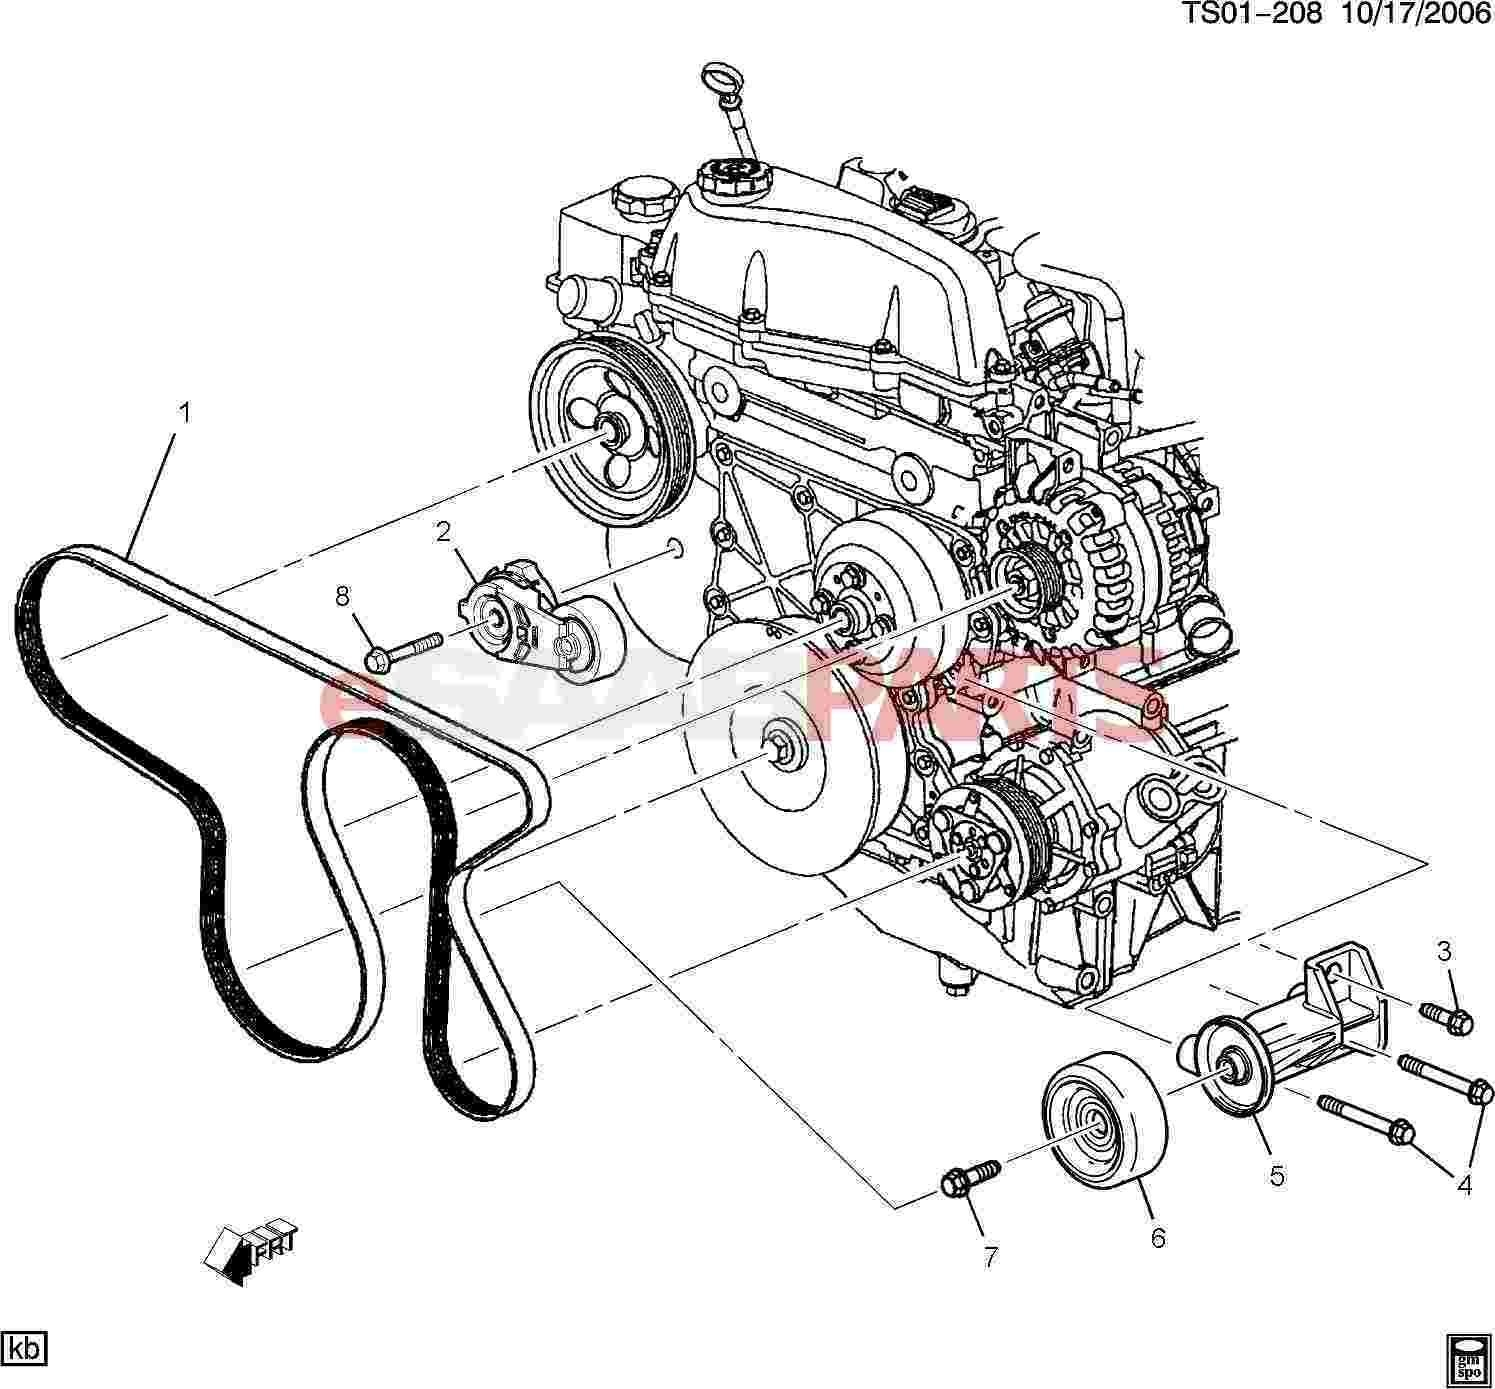 2003 Ford Expedition Engine Diagram How To Install Replace Pulley Diagrams Chevy Blazer Ignition Coil Spark